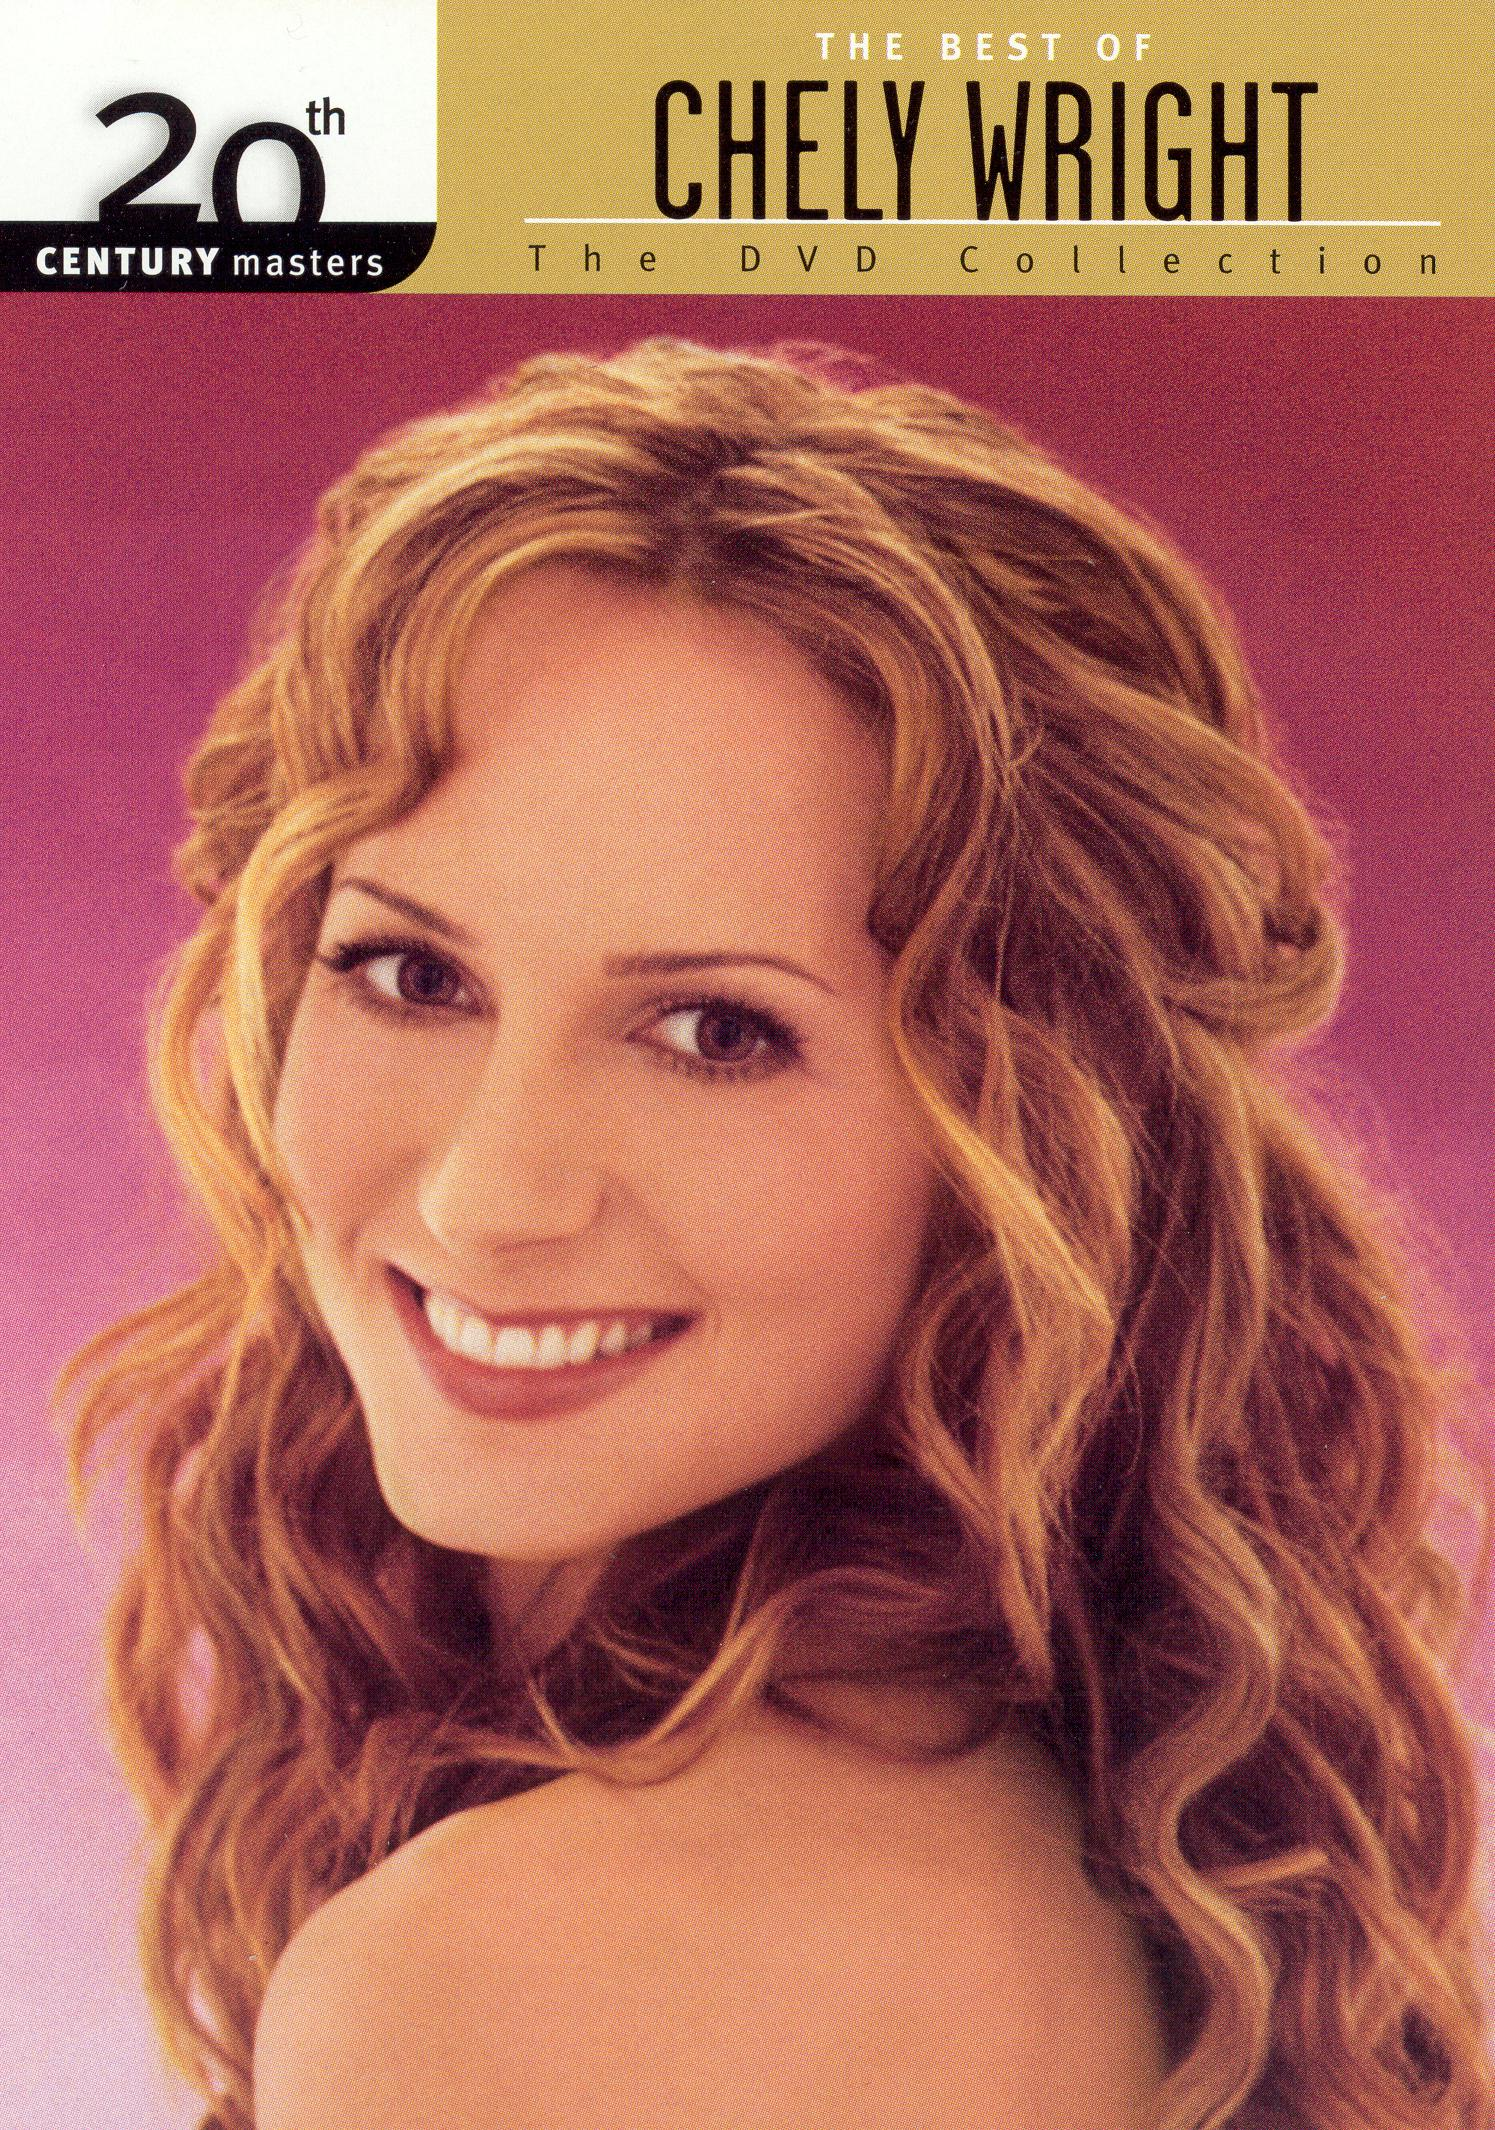 20th Century Masters: The Best of Chely Wright